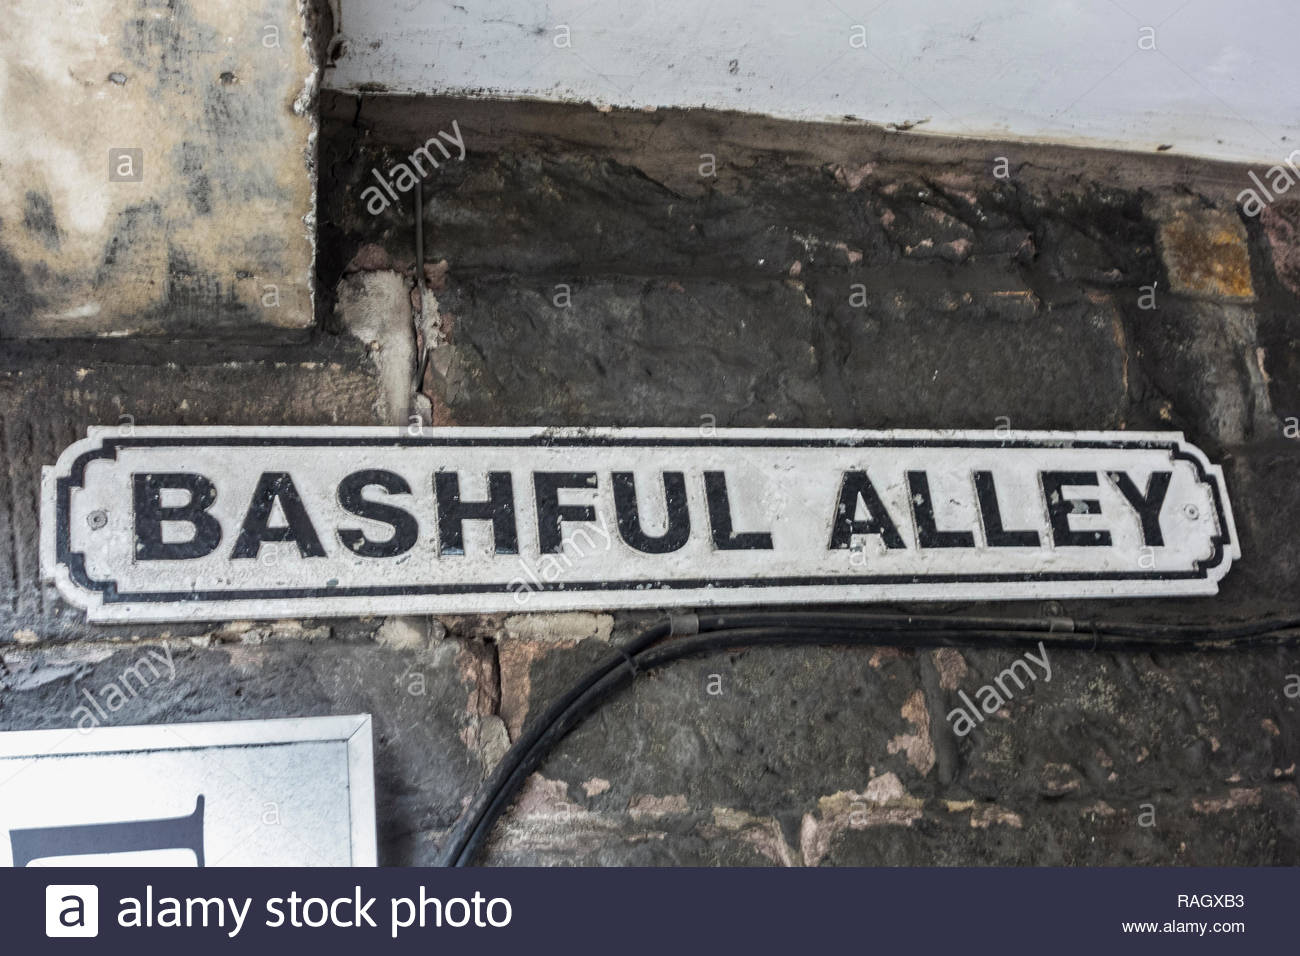 Une plaque de rue pour Bashful Alley, une ruelle / alley entre King Street et Market Street à Lancaster, Lancashire, England, UK Photo Stock